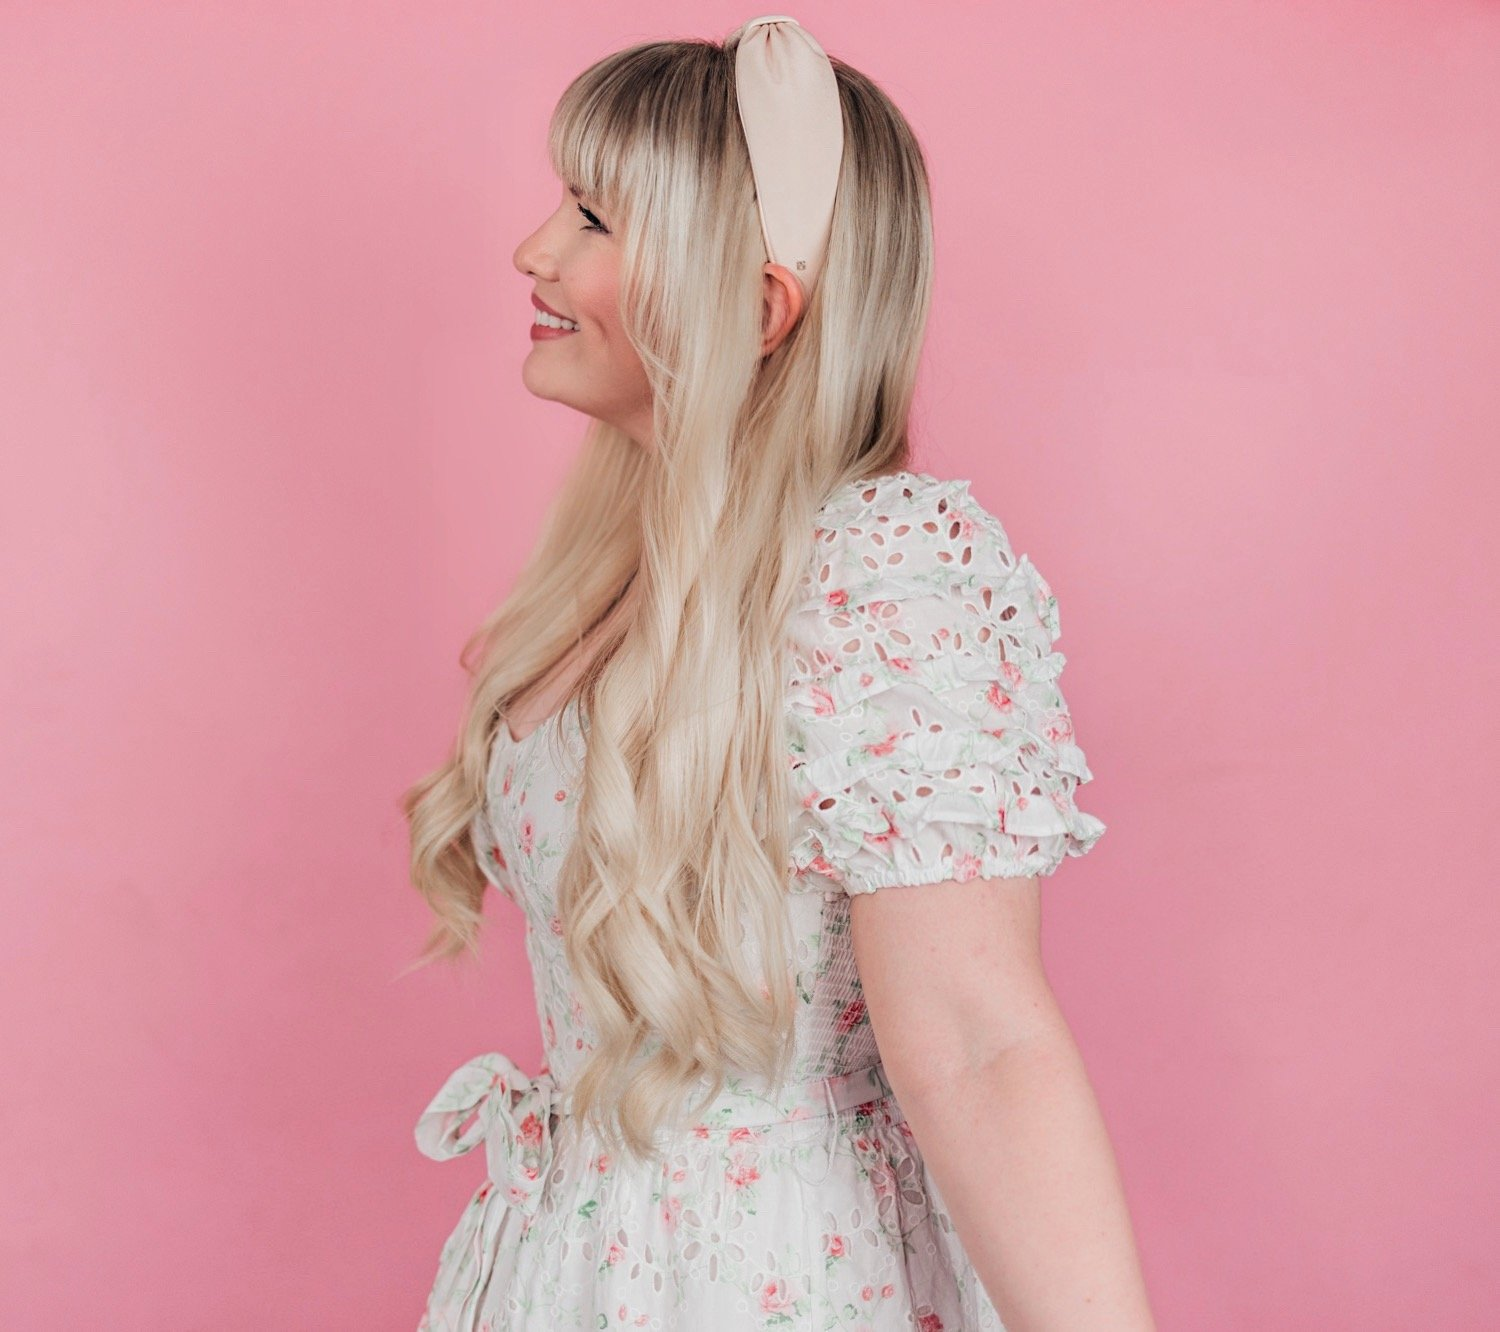 Elizabeth Hugen of Lizzie in Lace shares 5 simple summer hairstyles using hair accessories including a blush pink headband